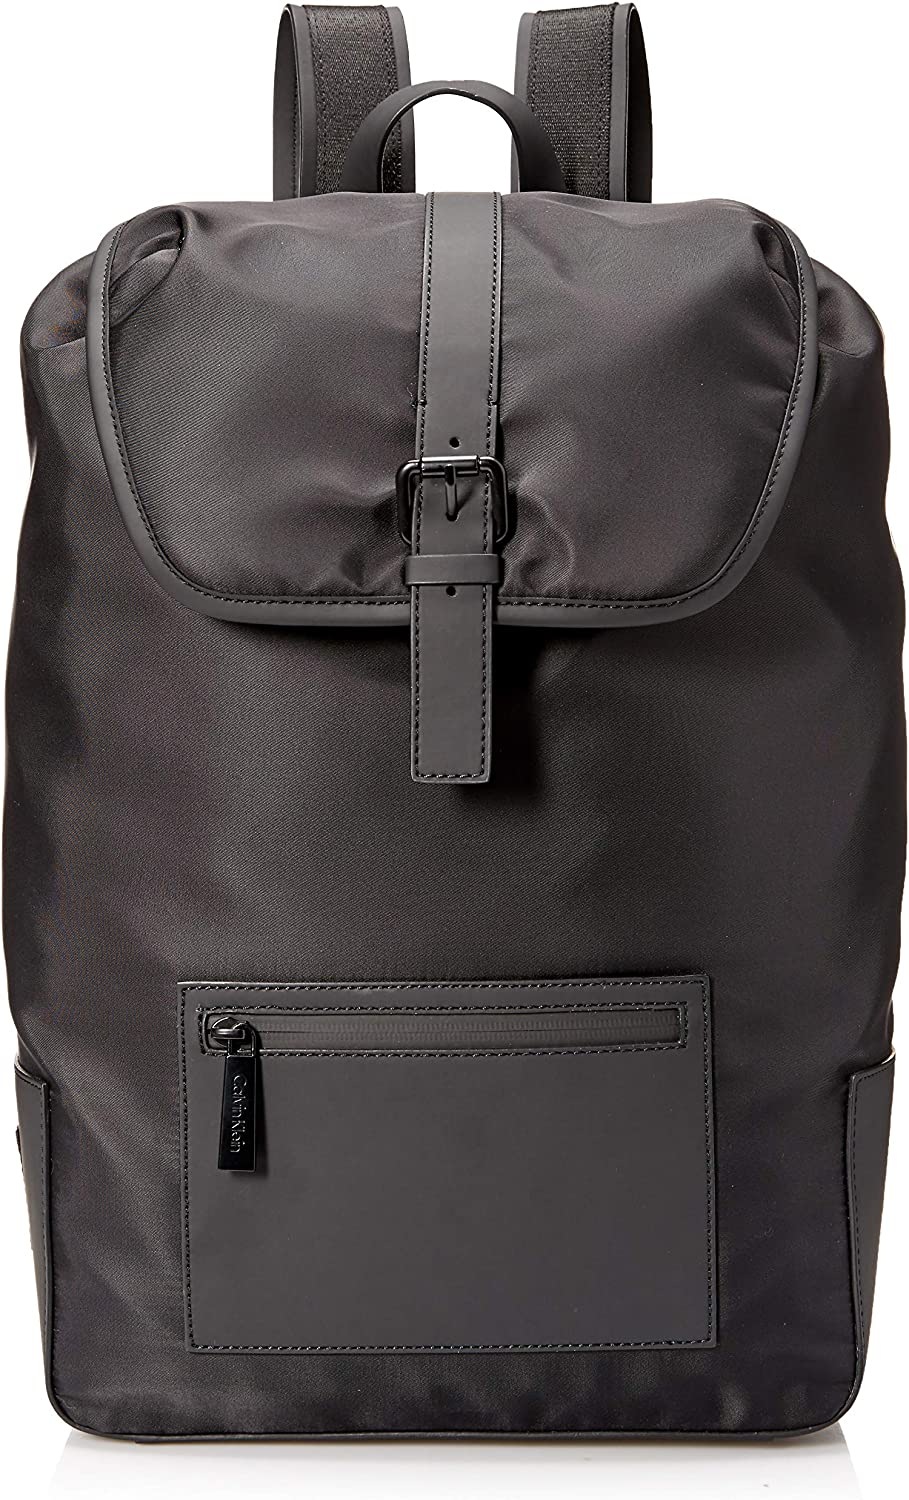 Calvin Klein Men's Nylon Flap Backpack